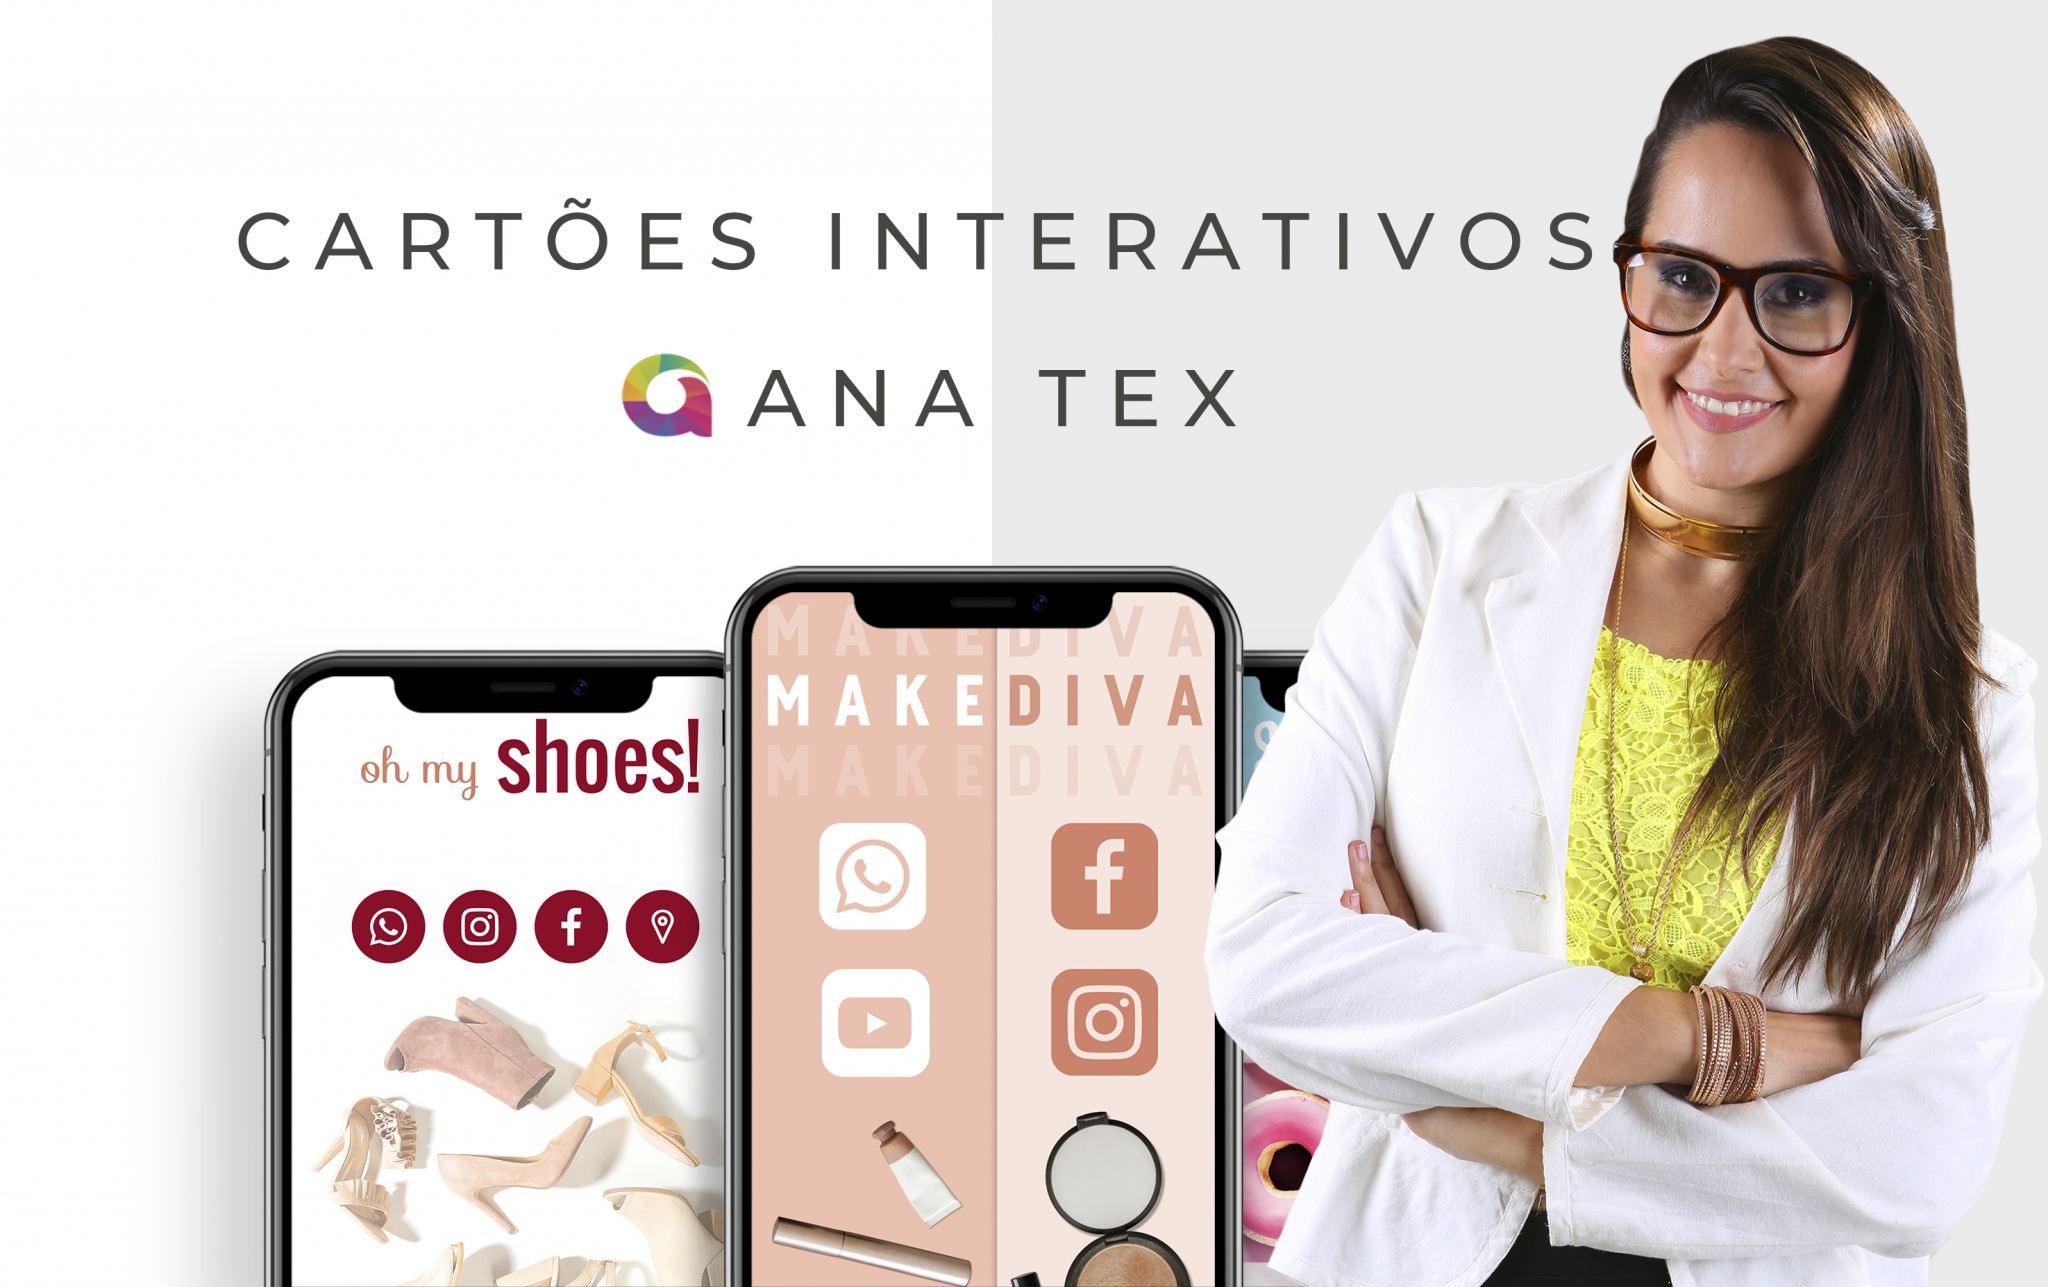 intercom ana tex - Como montar slides: passo a passo definitivo